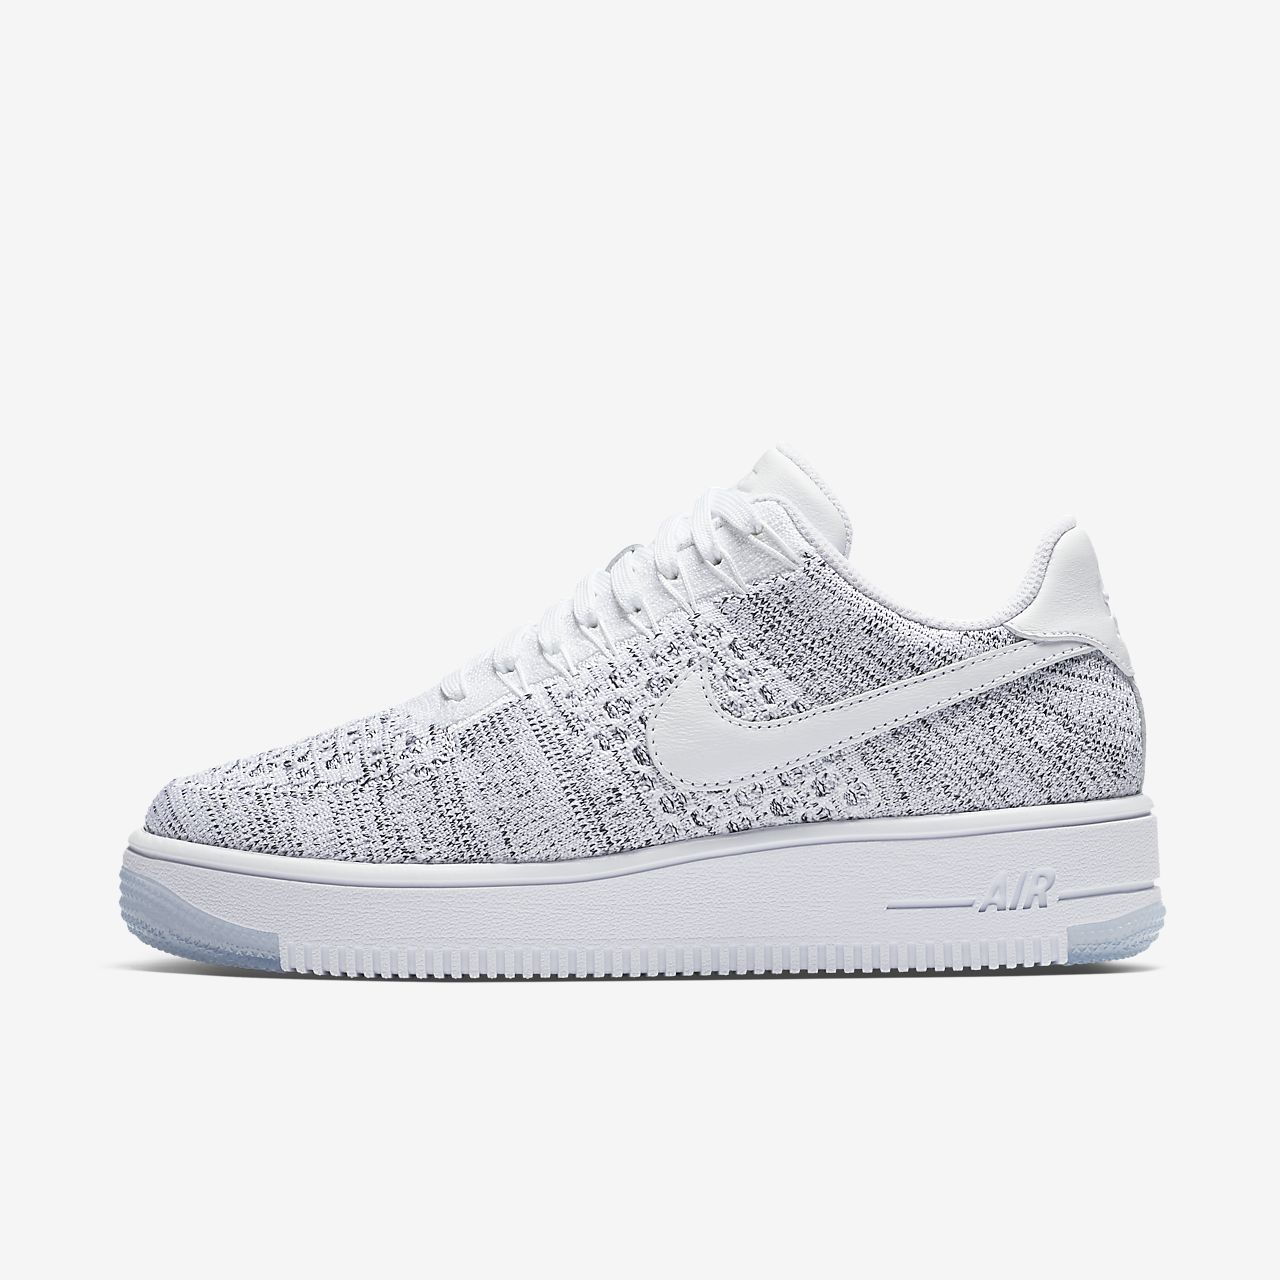 nike air force 1 flyknit men low nz